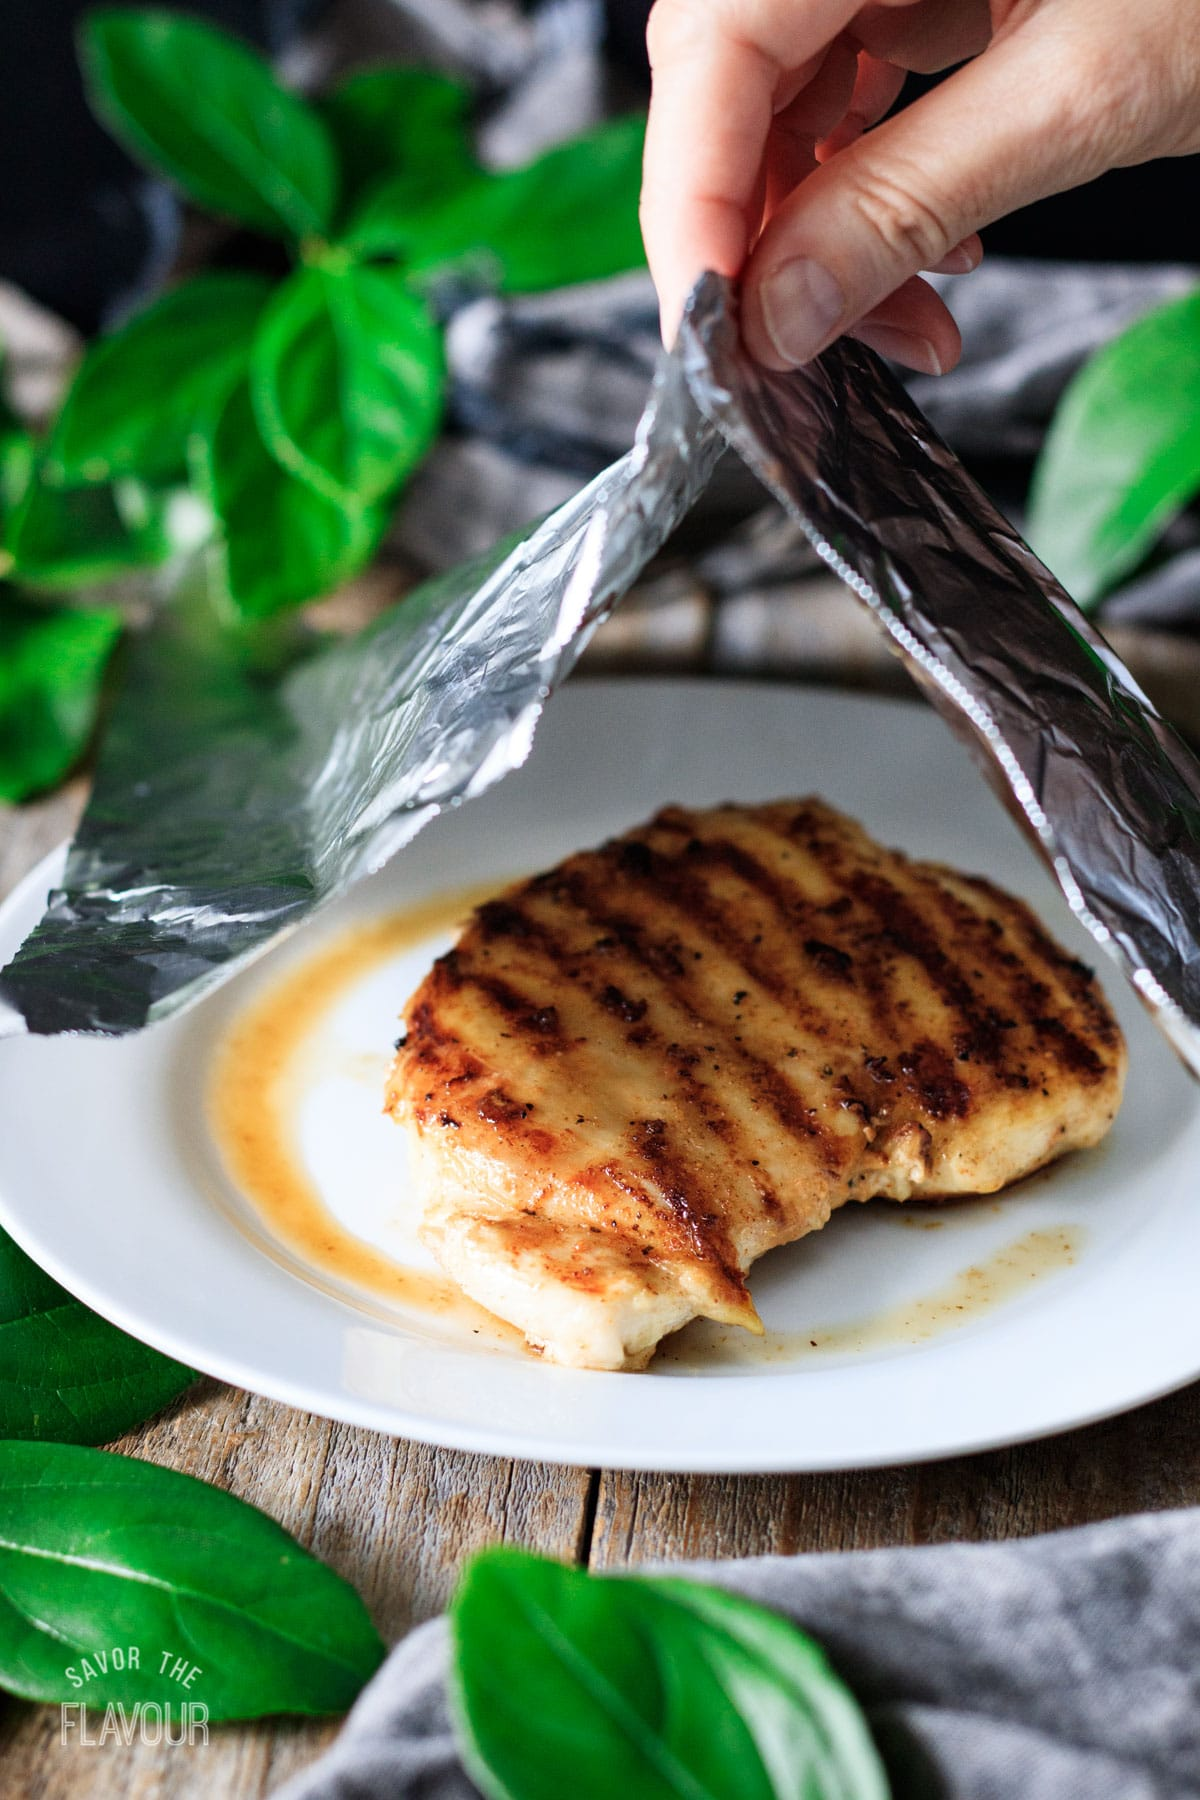 tenting a grilled chicken breast with foil